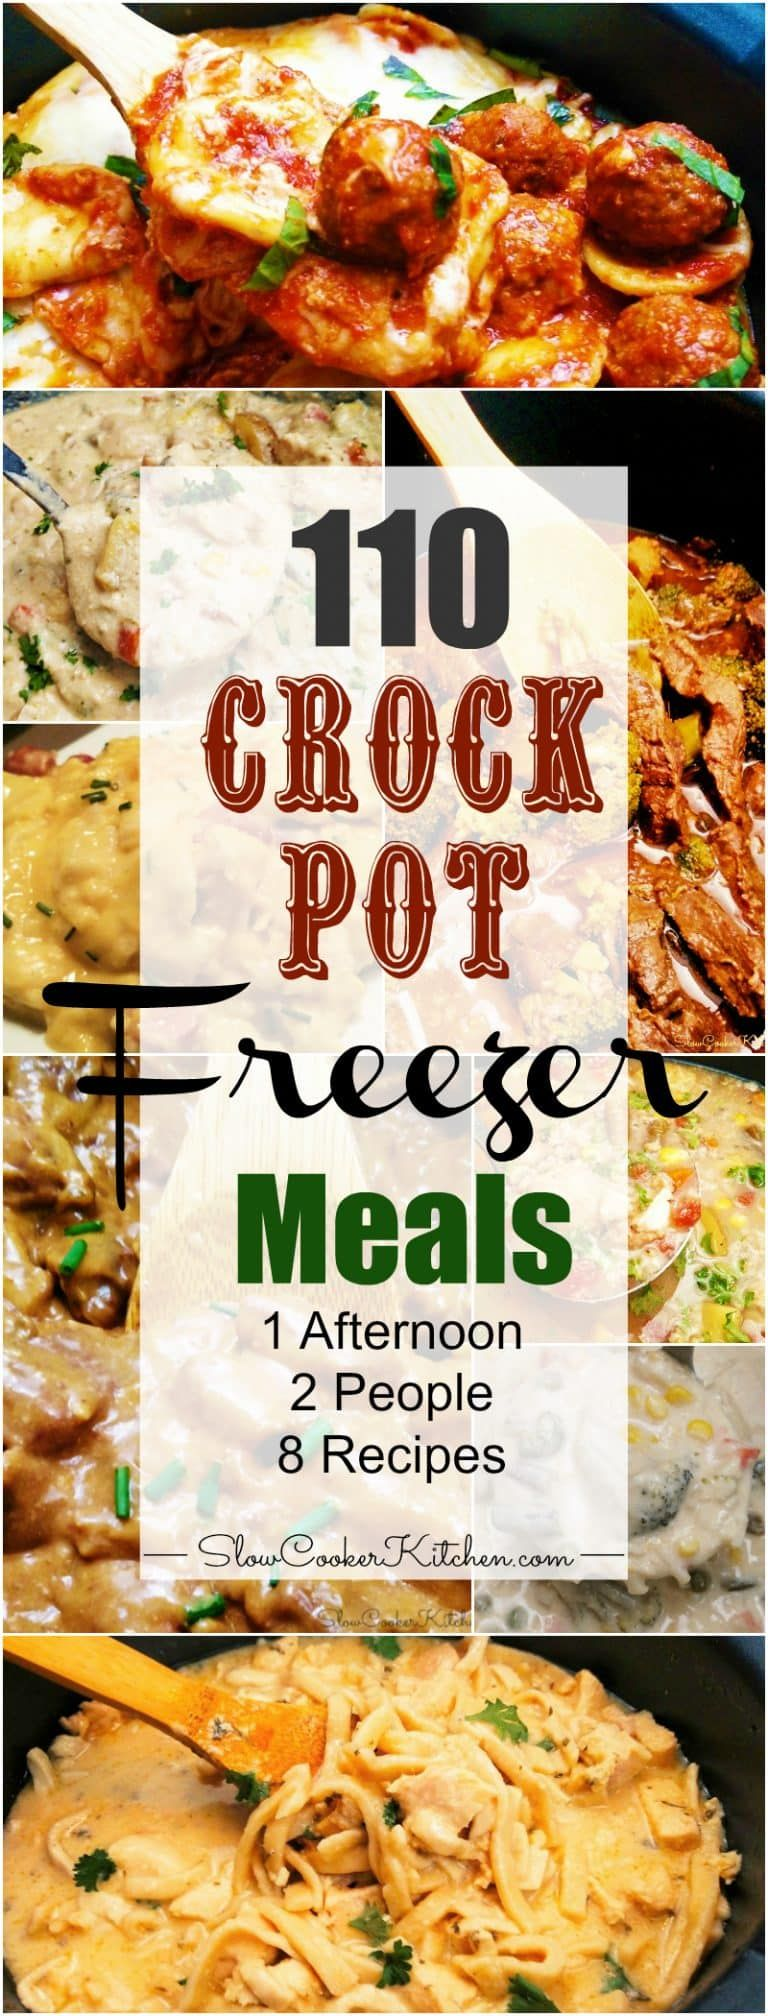 110 Crockpot Freezer Meals in 1 Afternoon #crockpotmeals